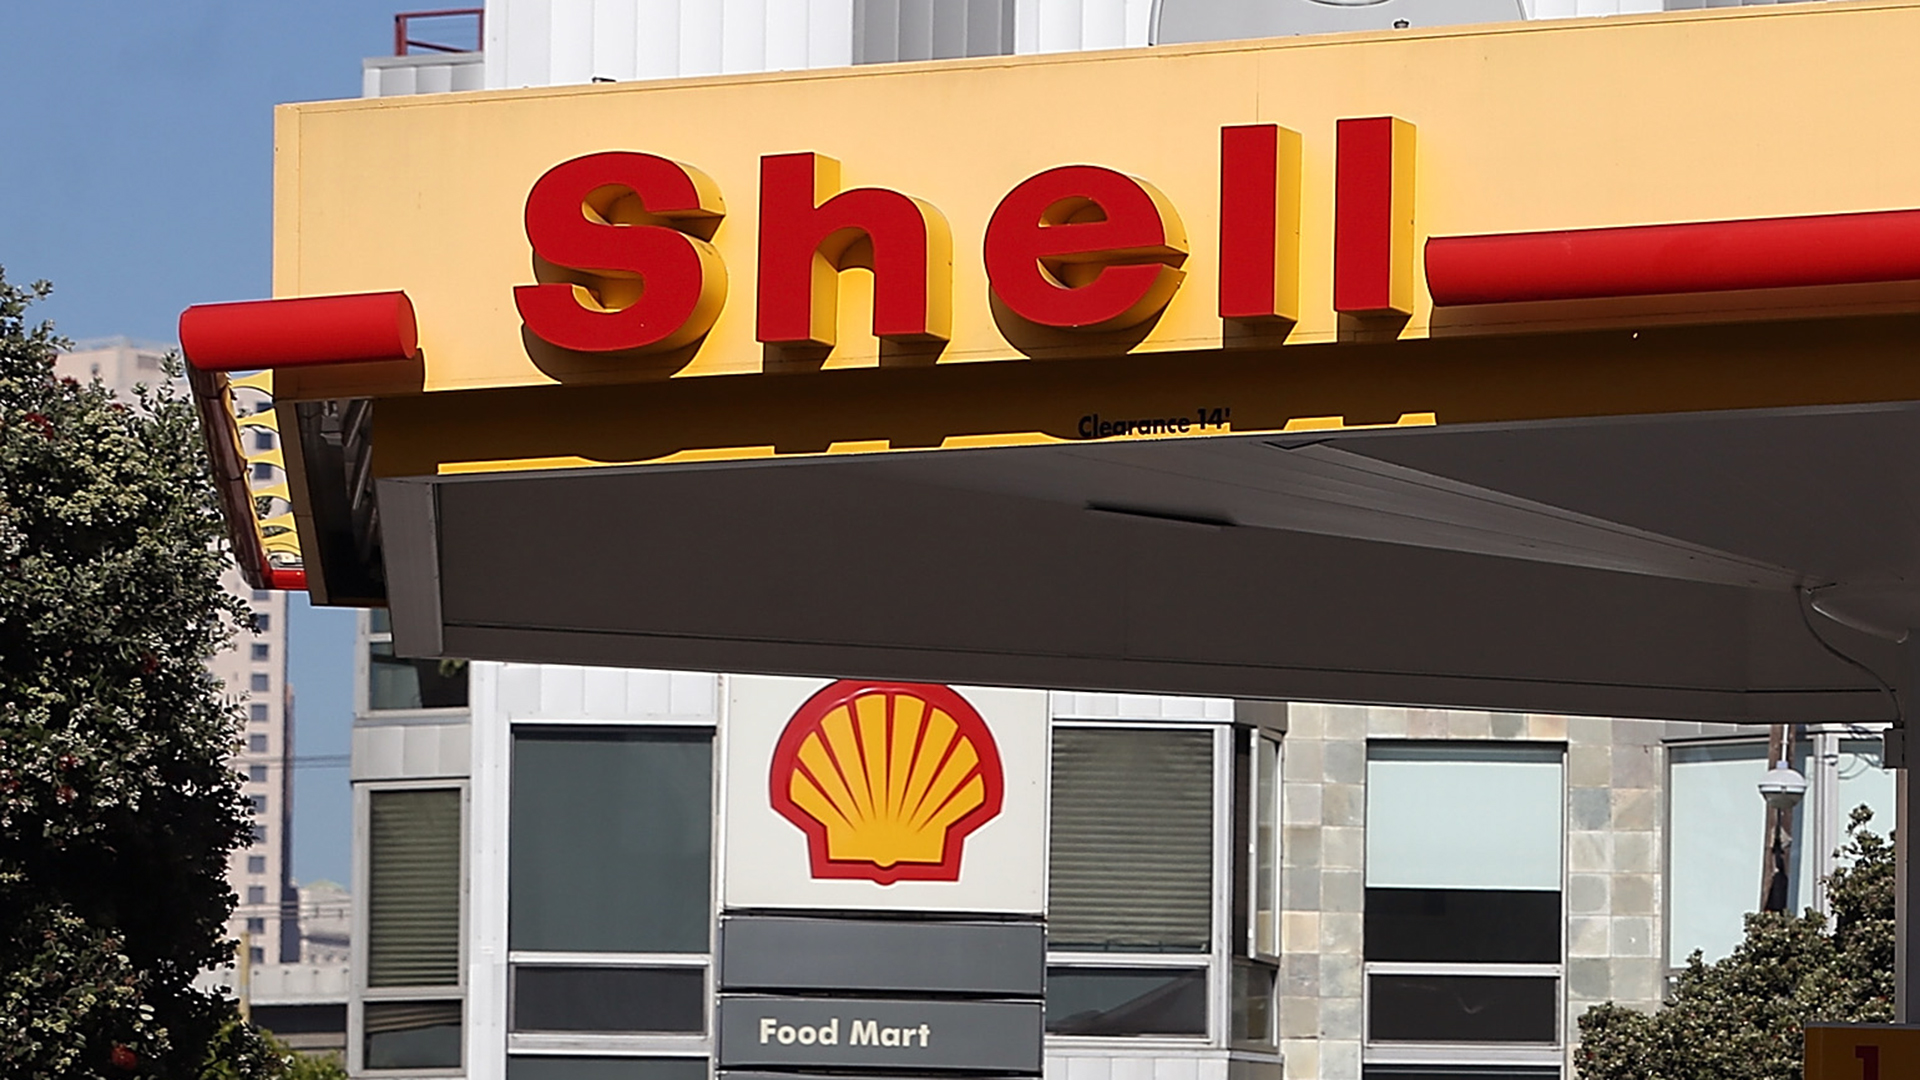 Shell gas station Shell oil-159532.jpg75706312